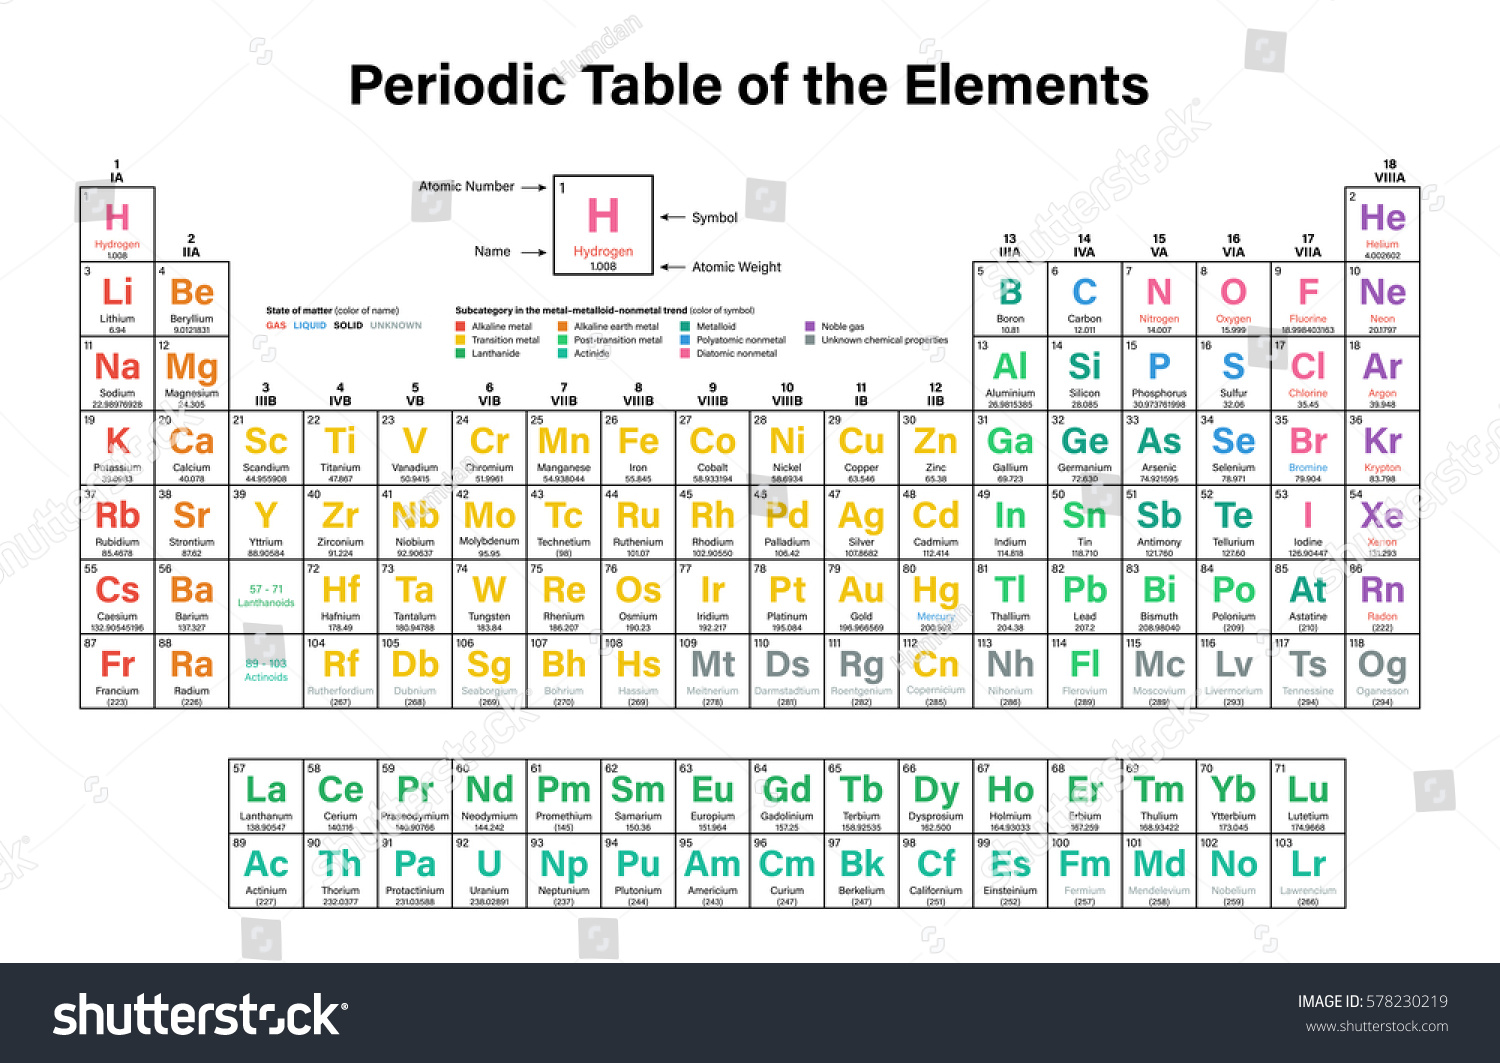 Periodic table elements colorful vector illustration stock vector periodic table of the elements colorful vector illustration including 2016 the four new elements nihonium gamestrikefo Gallery